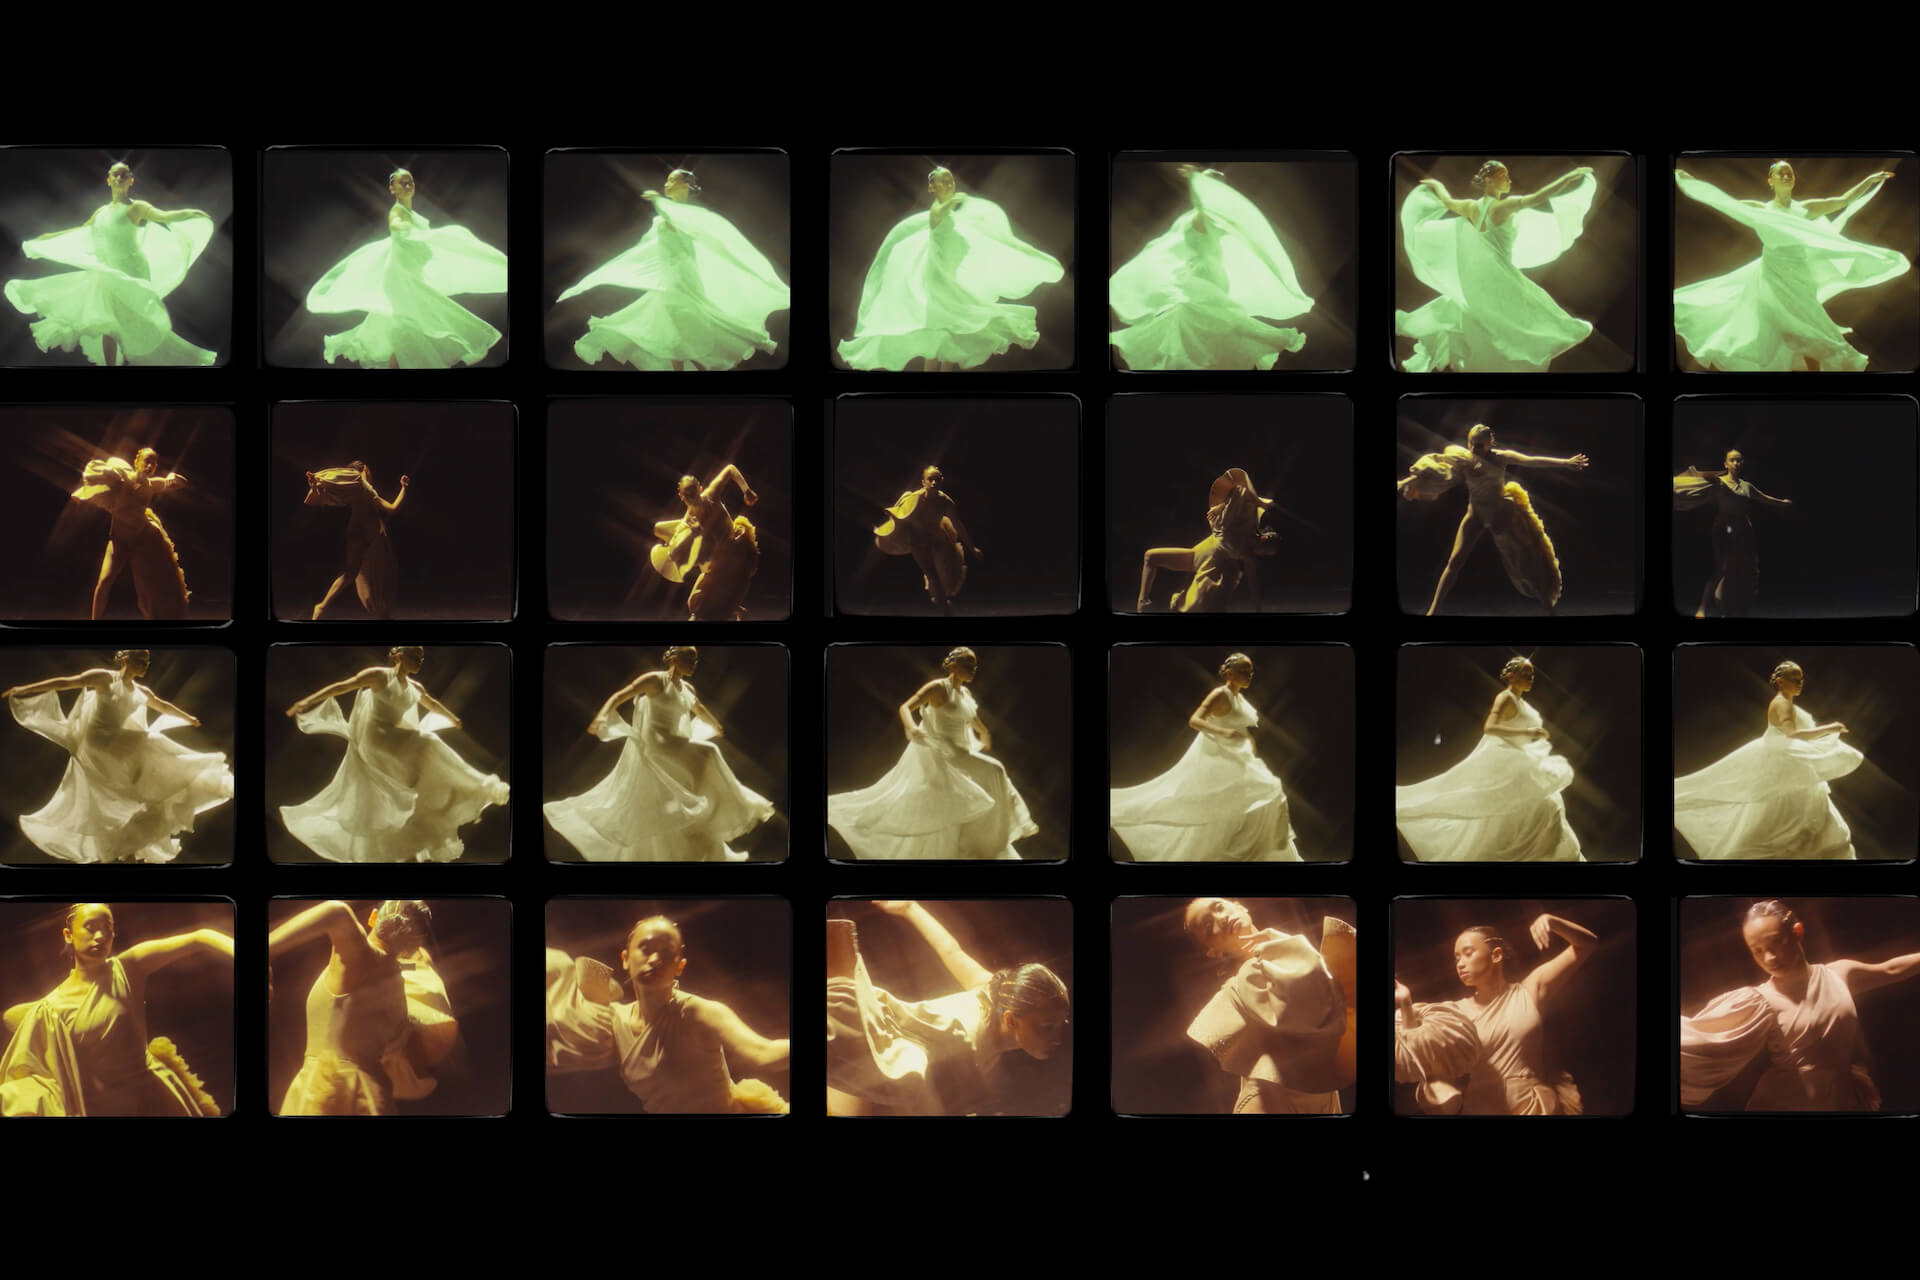 Madge Reyes tells us about capturing dance through film, finding movement in the mundane, and what to expect in this year's dance film festival.